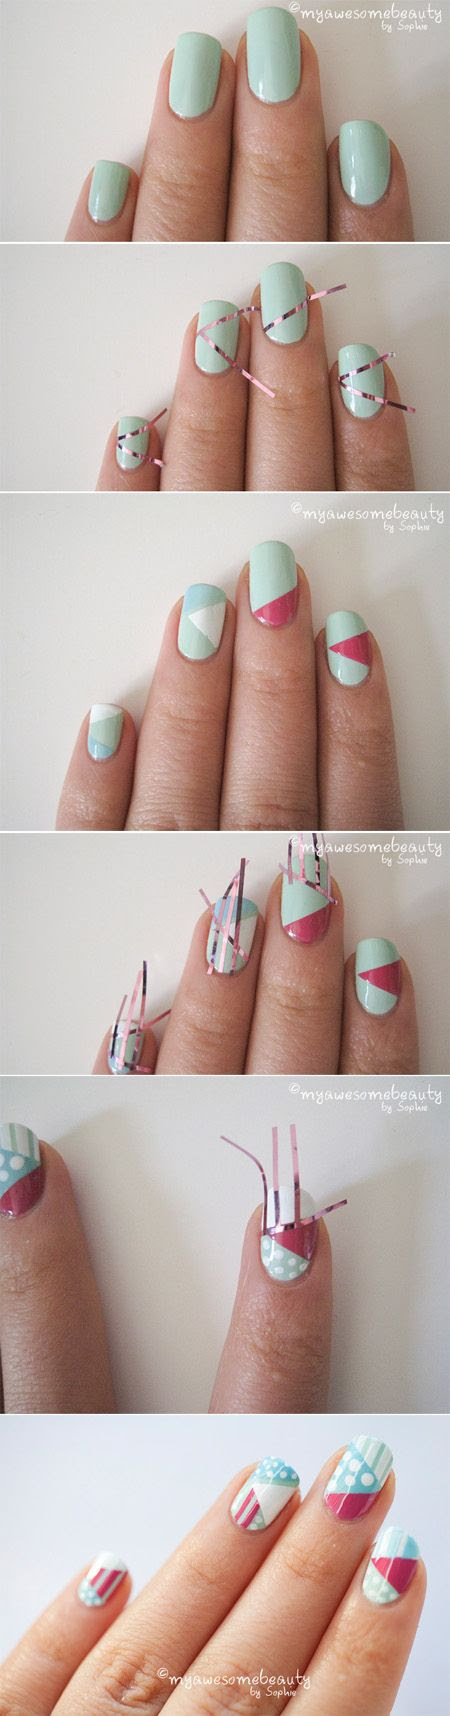 Geometric Nails. 12 DIY nail art designs using tape.